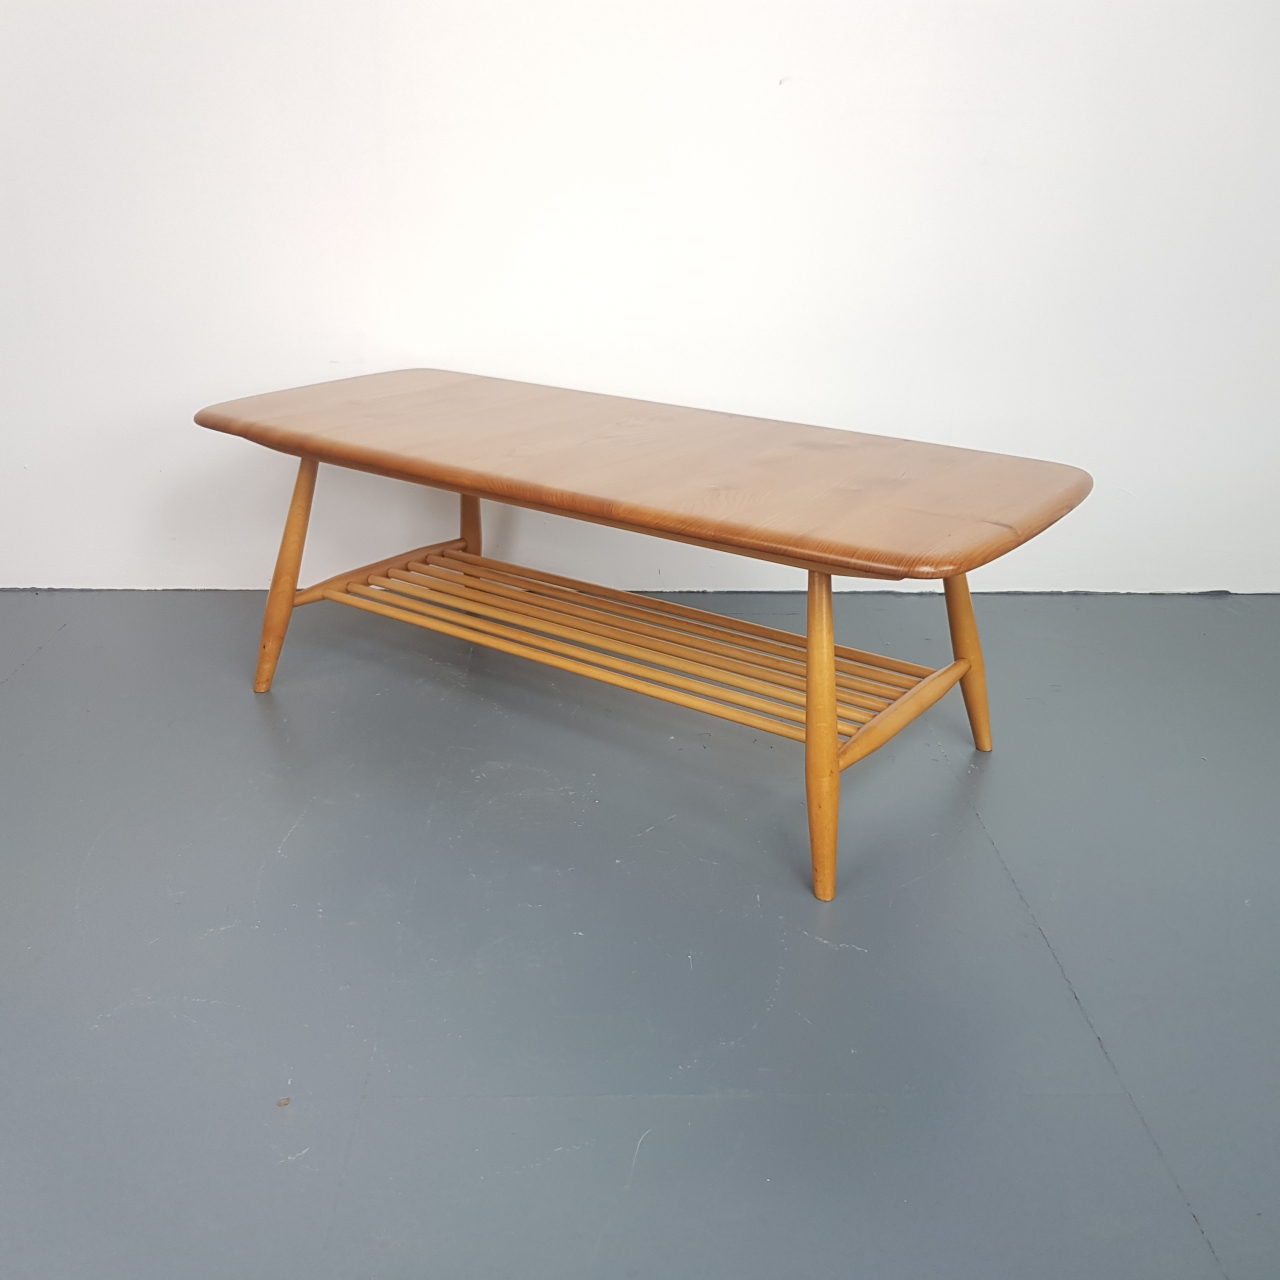 Vintage Ercol Coffee Tables For Sale: Ercol Blonde Coffee Table